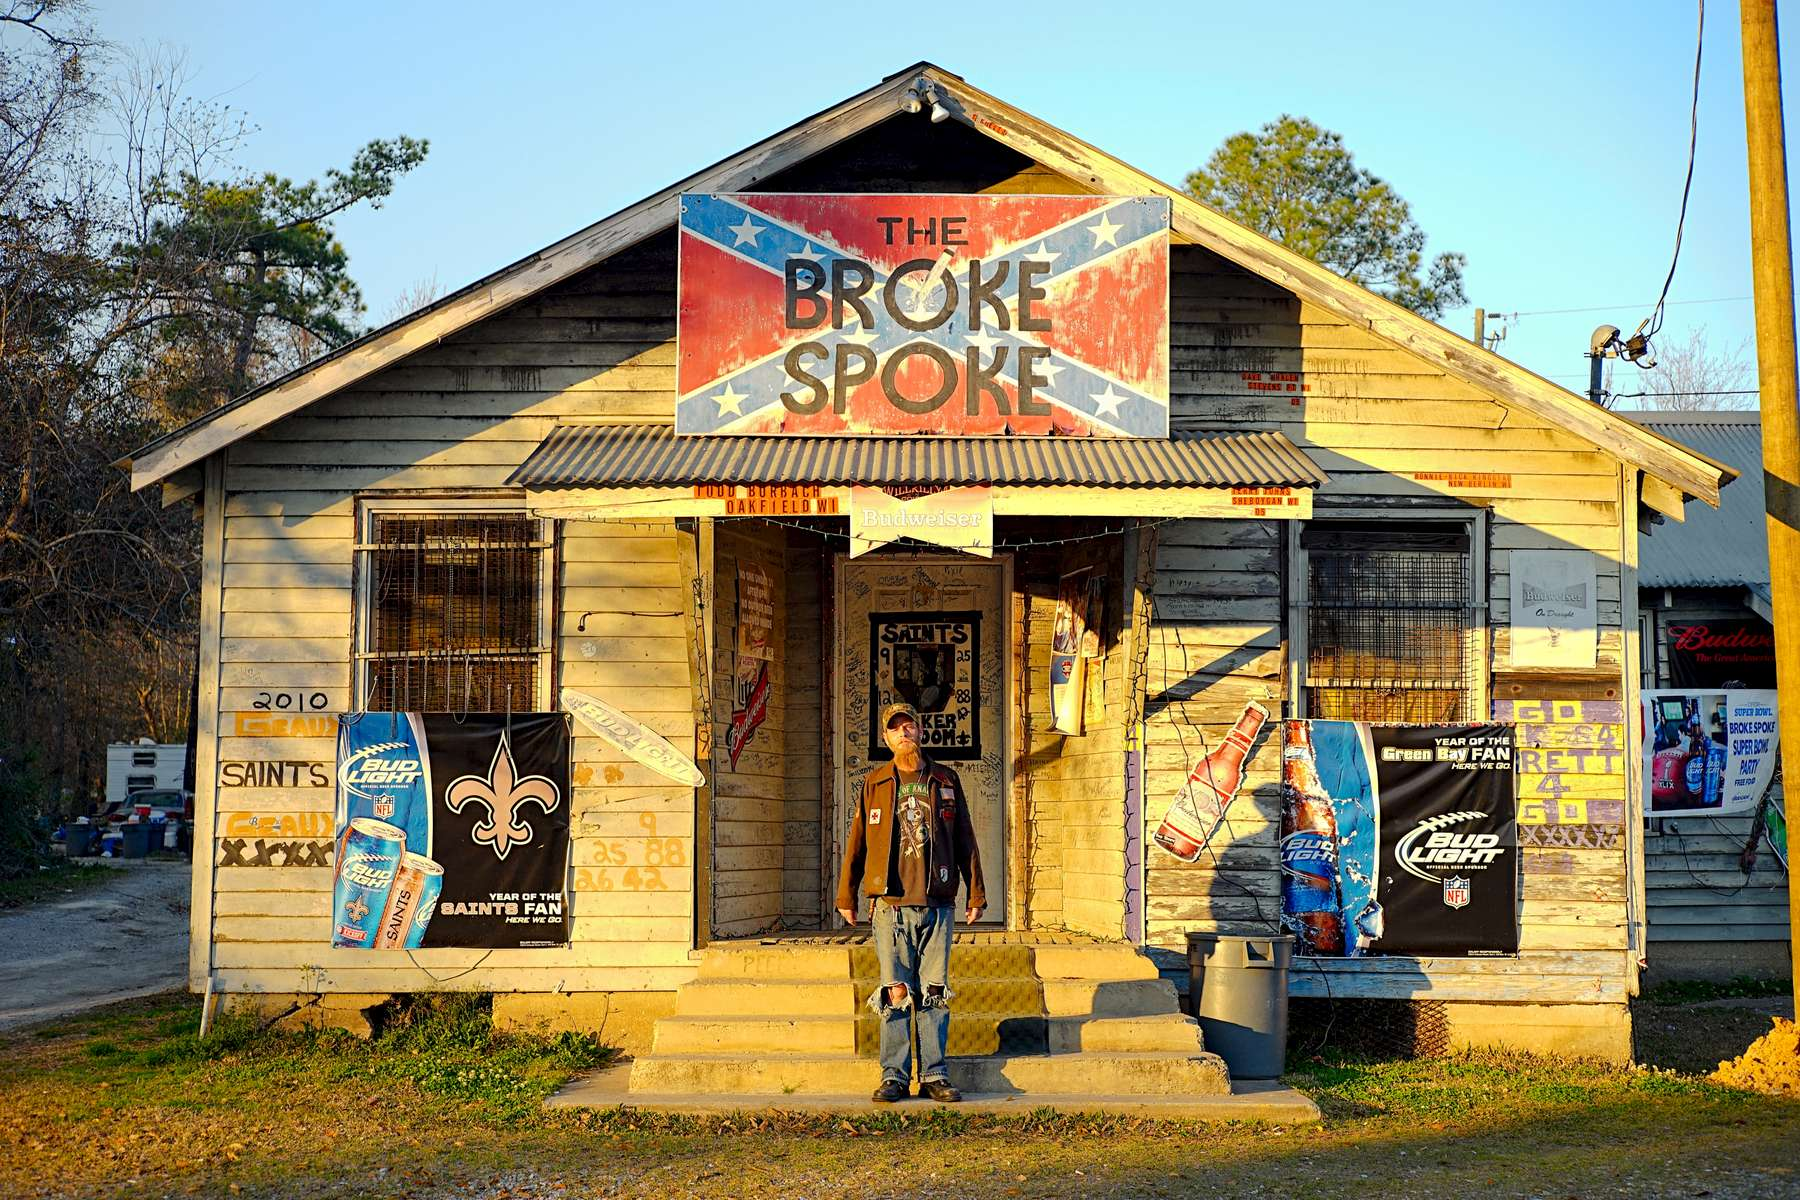 The Broke Spoke I Home of Favre